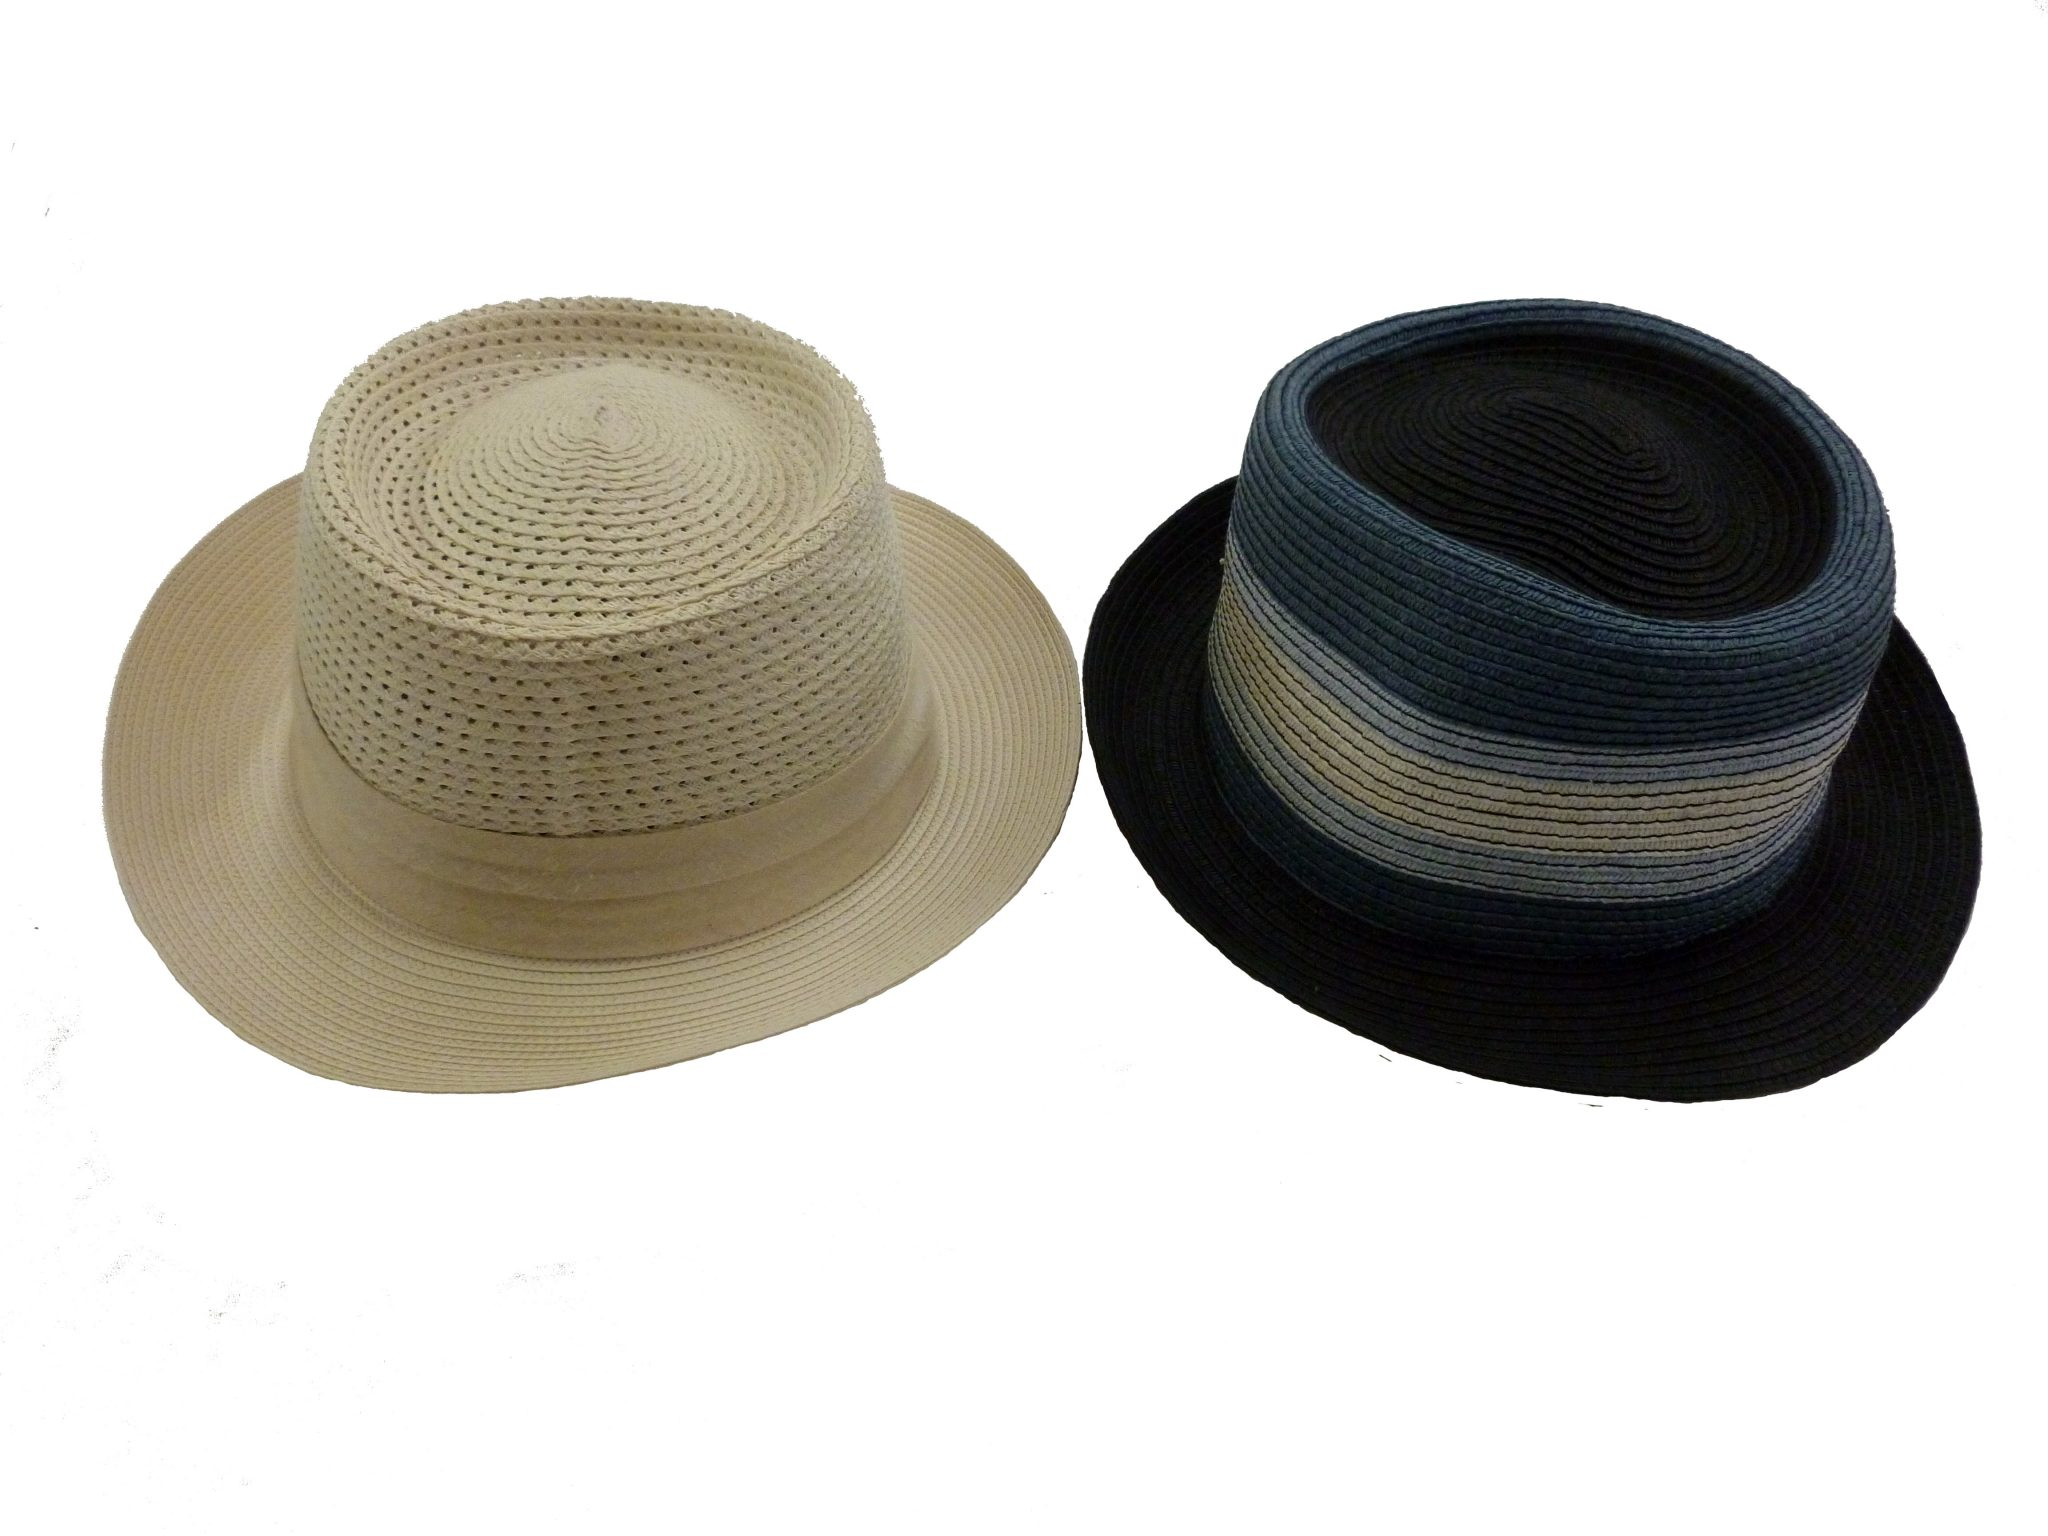 Hats Making a Comeback! – Ram Leather Care